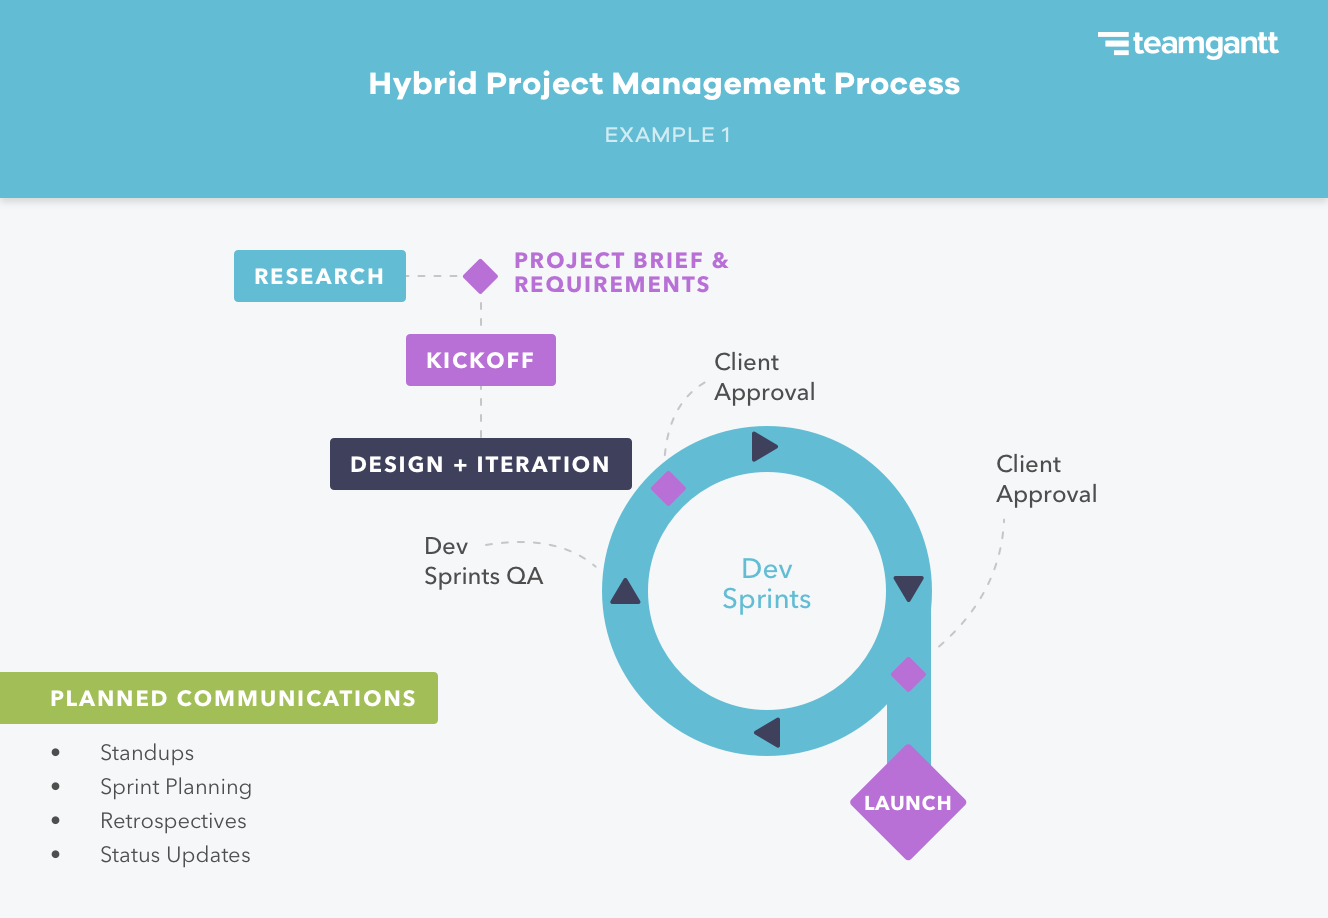 Example of a hybrid project management process